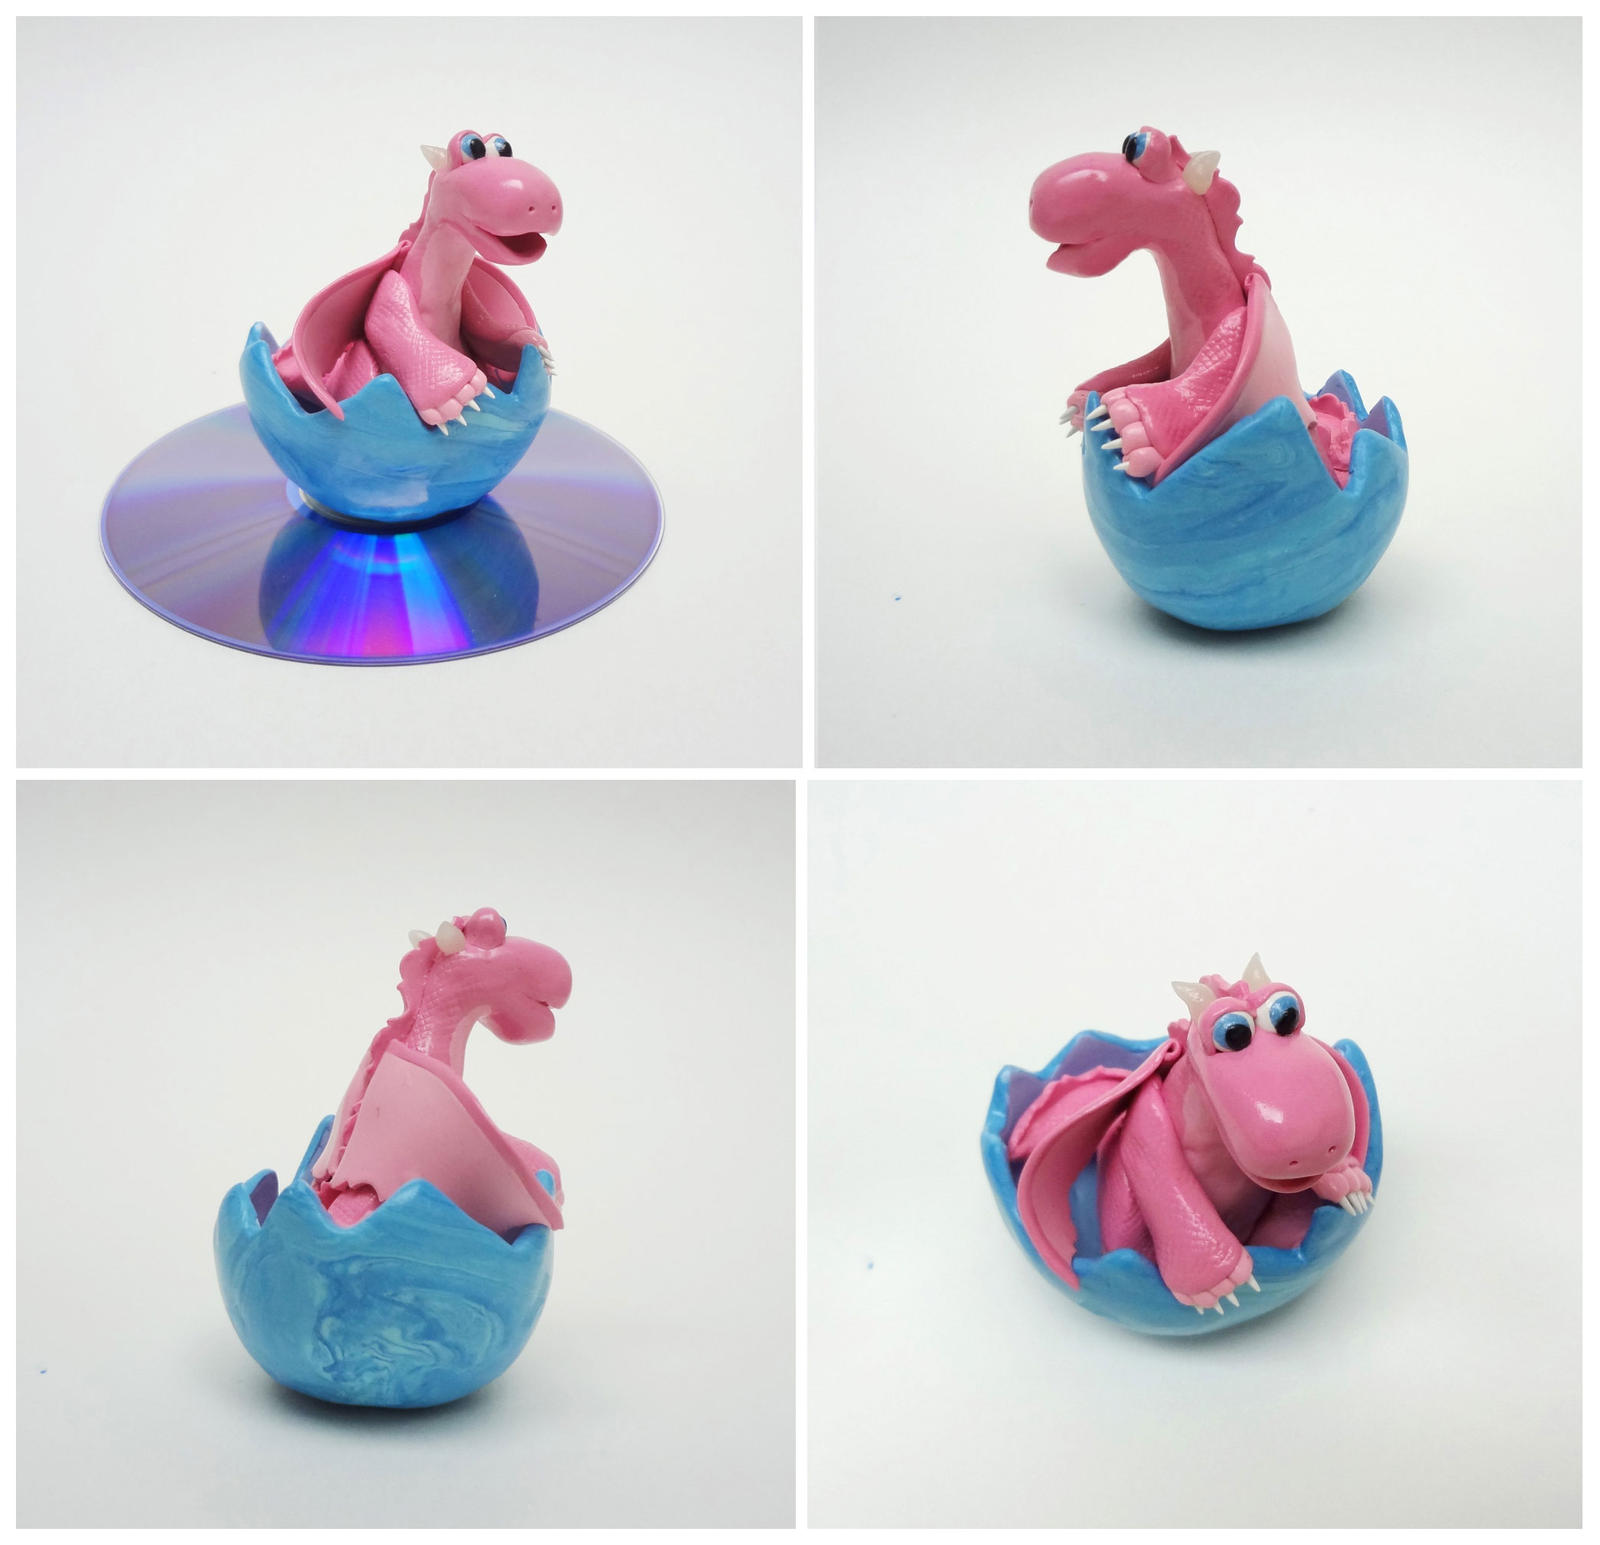 Pink dragon in blue egg